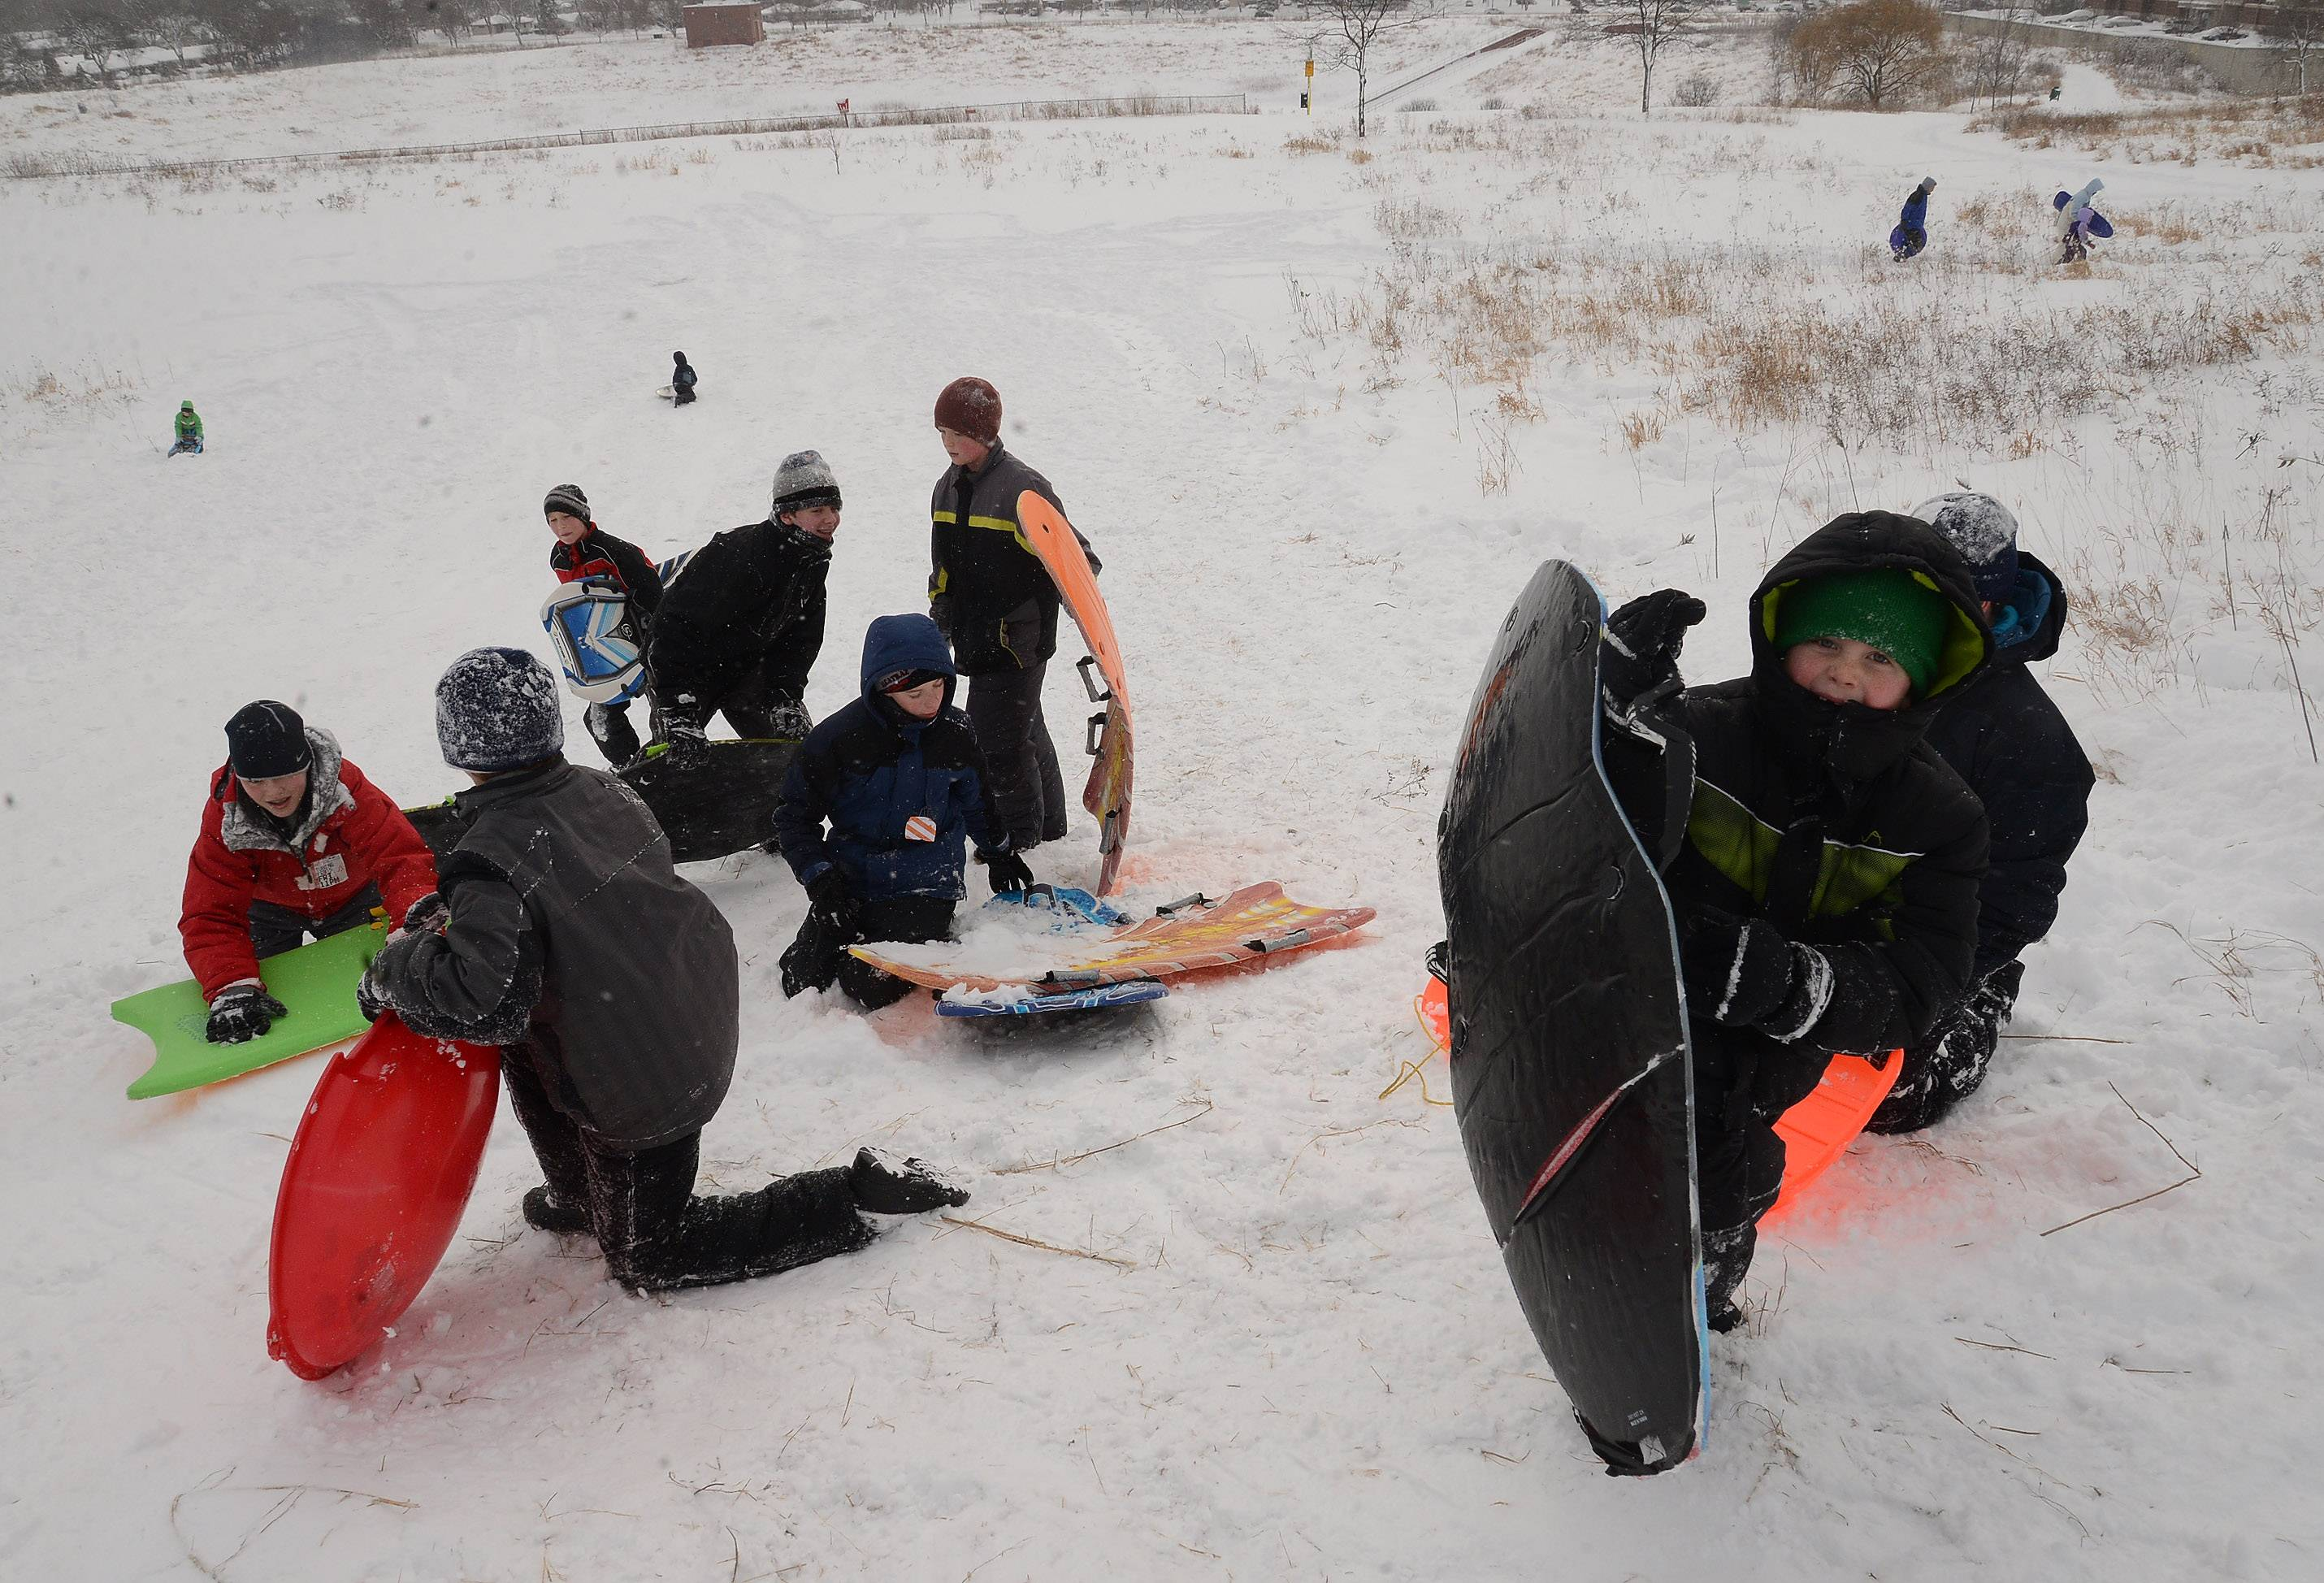 Sledders have a field day in the snow at Reimer Reservoir in Palatine.